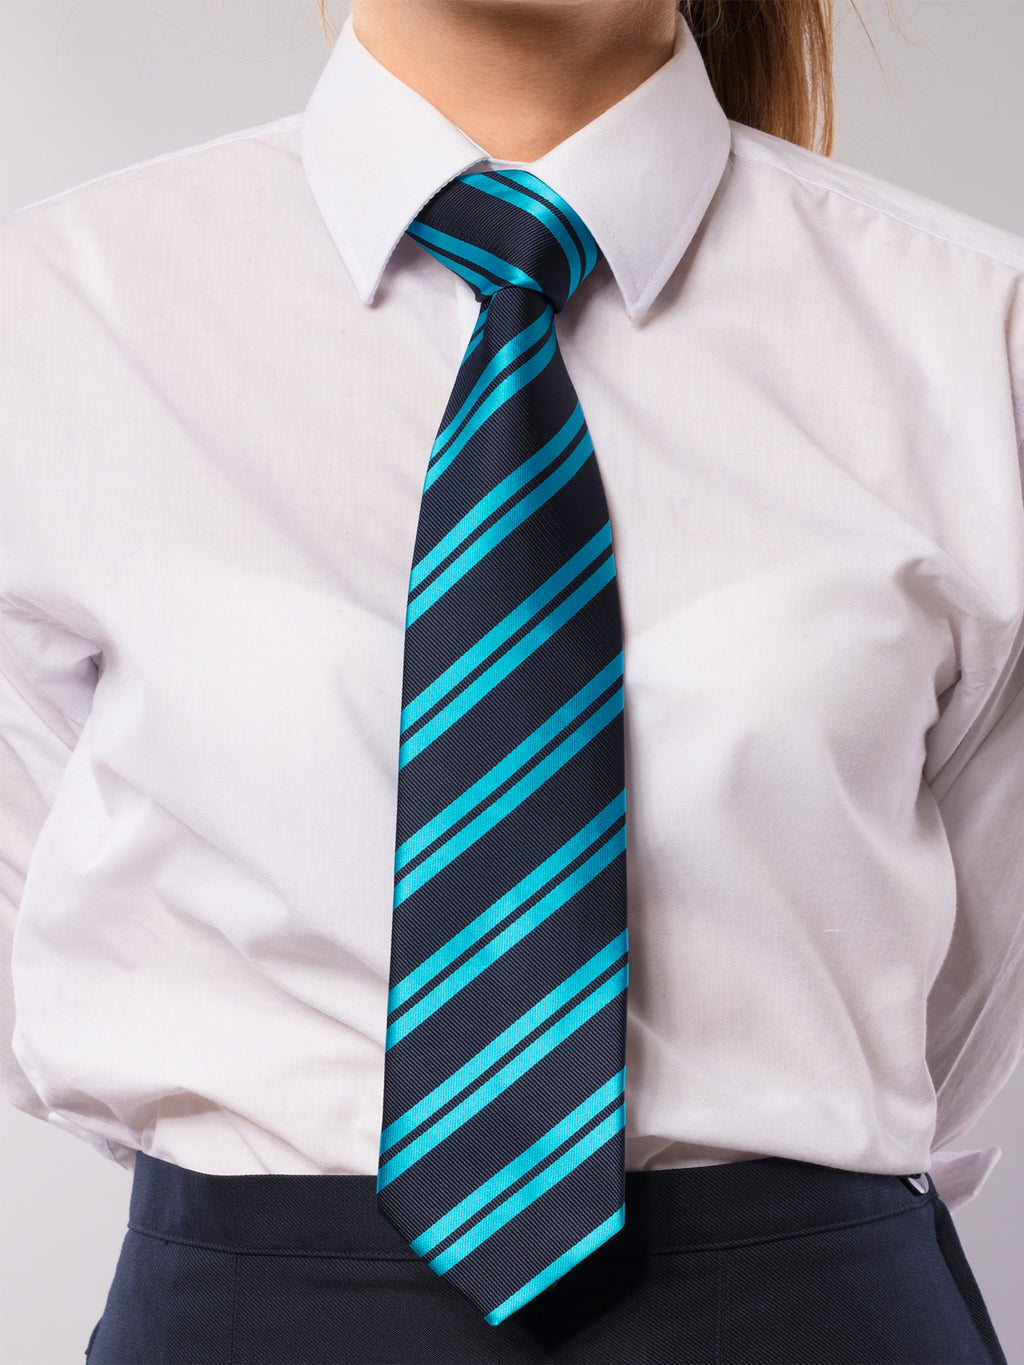 1st-5th Year Bangor Academy Tie